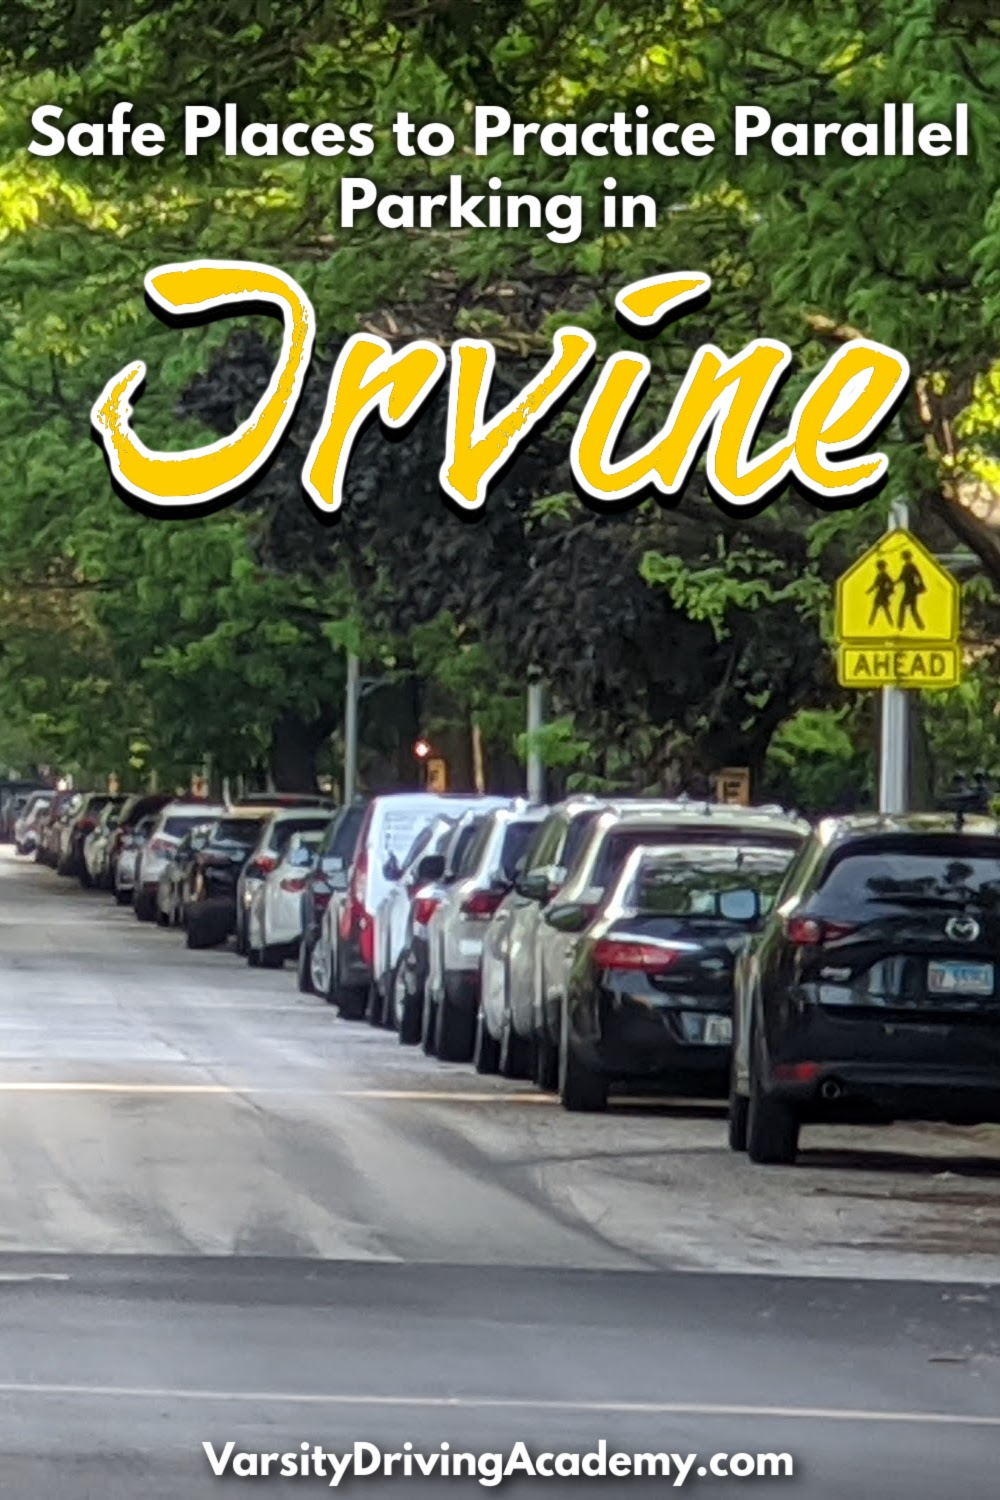 Finding safe places to practice parallel parking in Irvine is easier than you may think and very important to learning an undying driving skill.